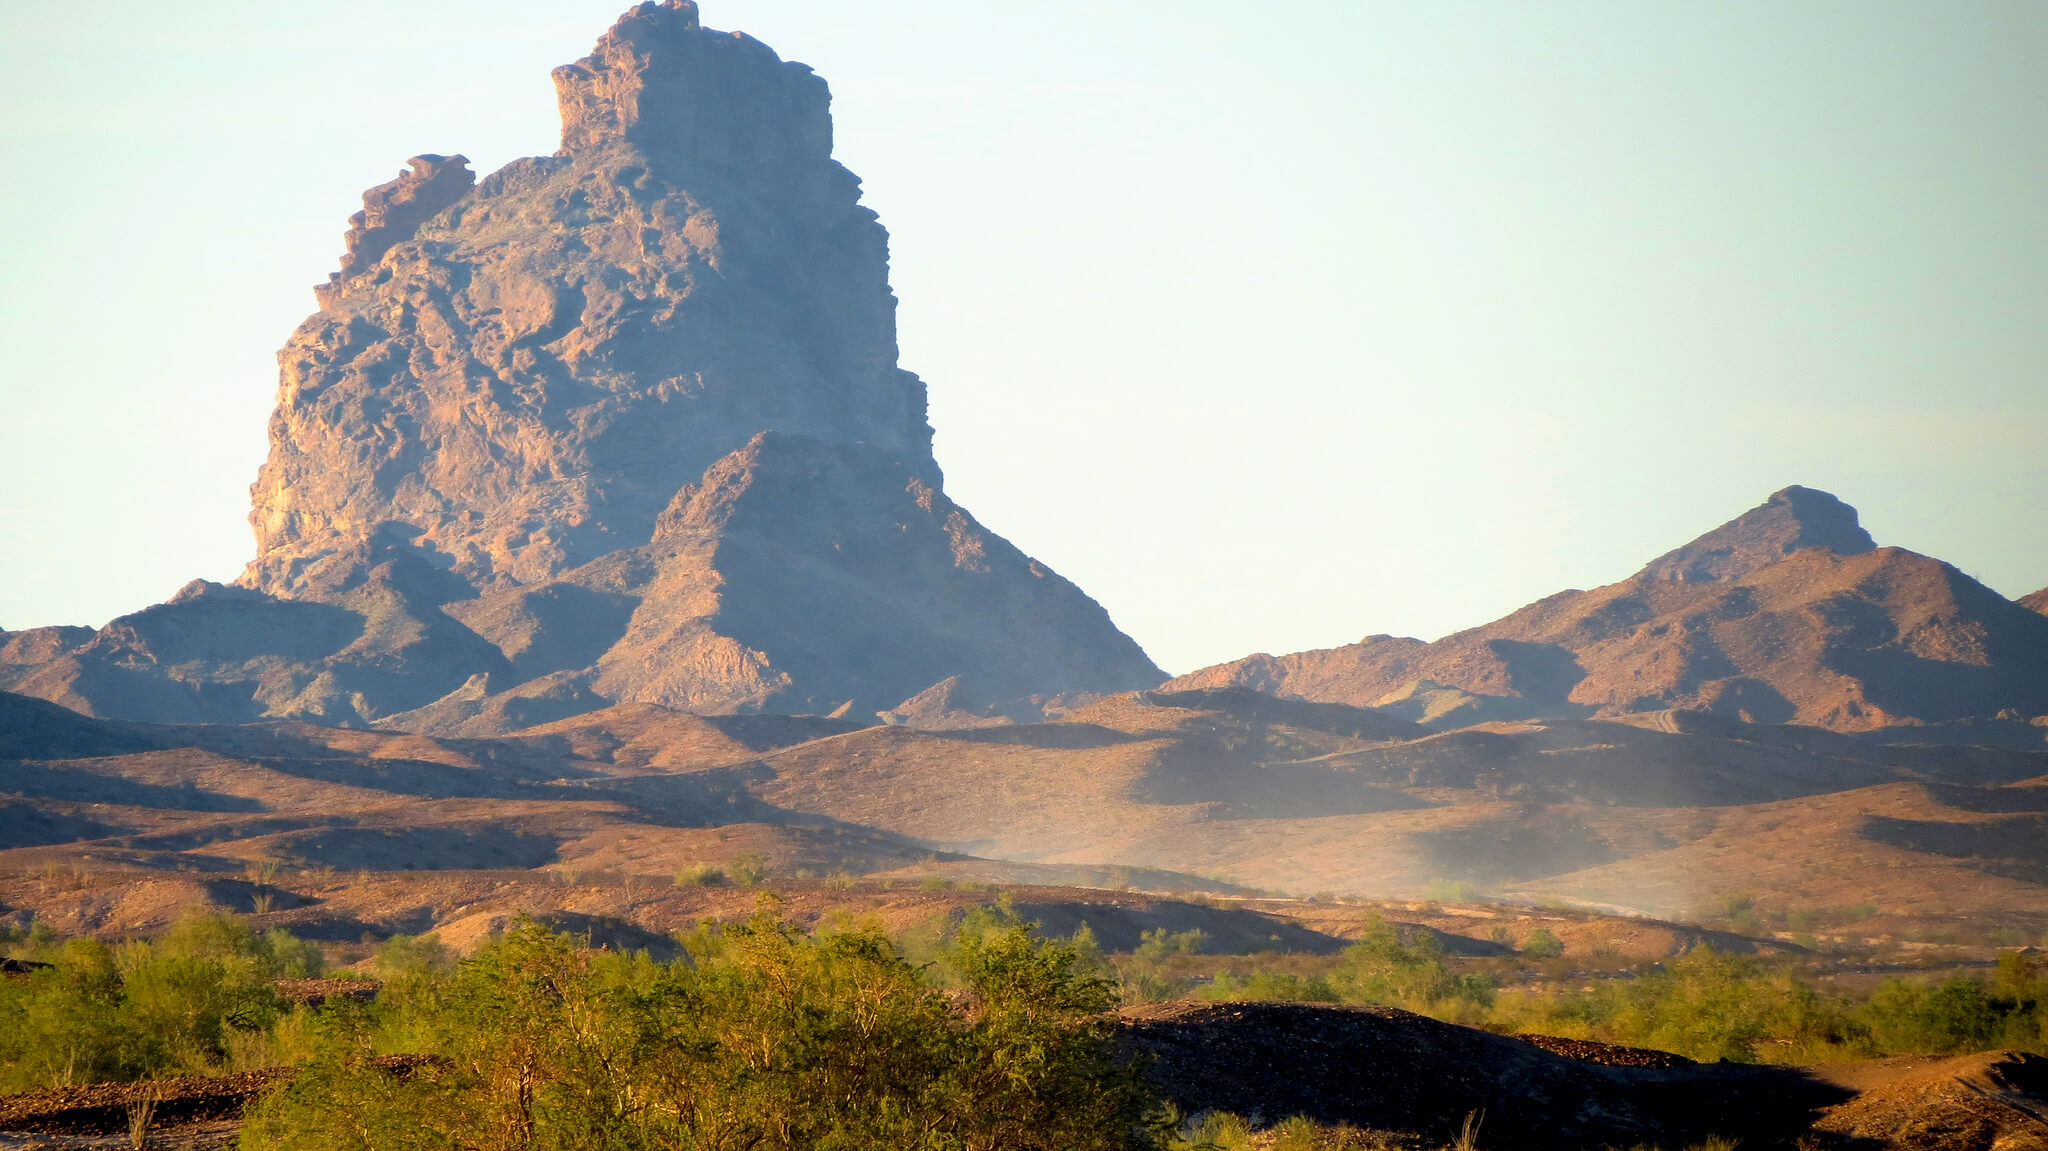 10 Reasons to Visit Picacho Peak State Park